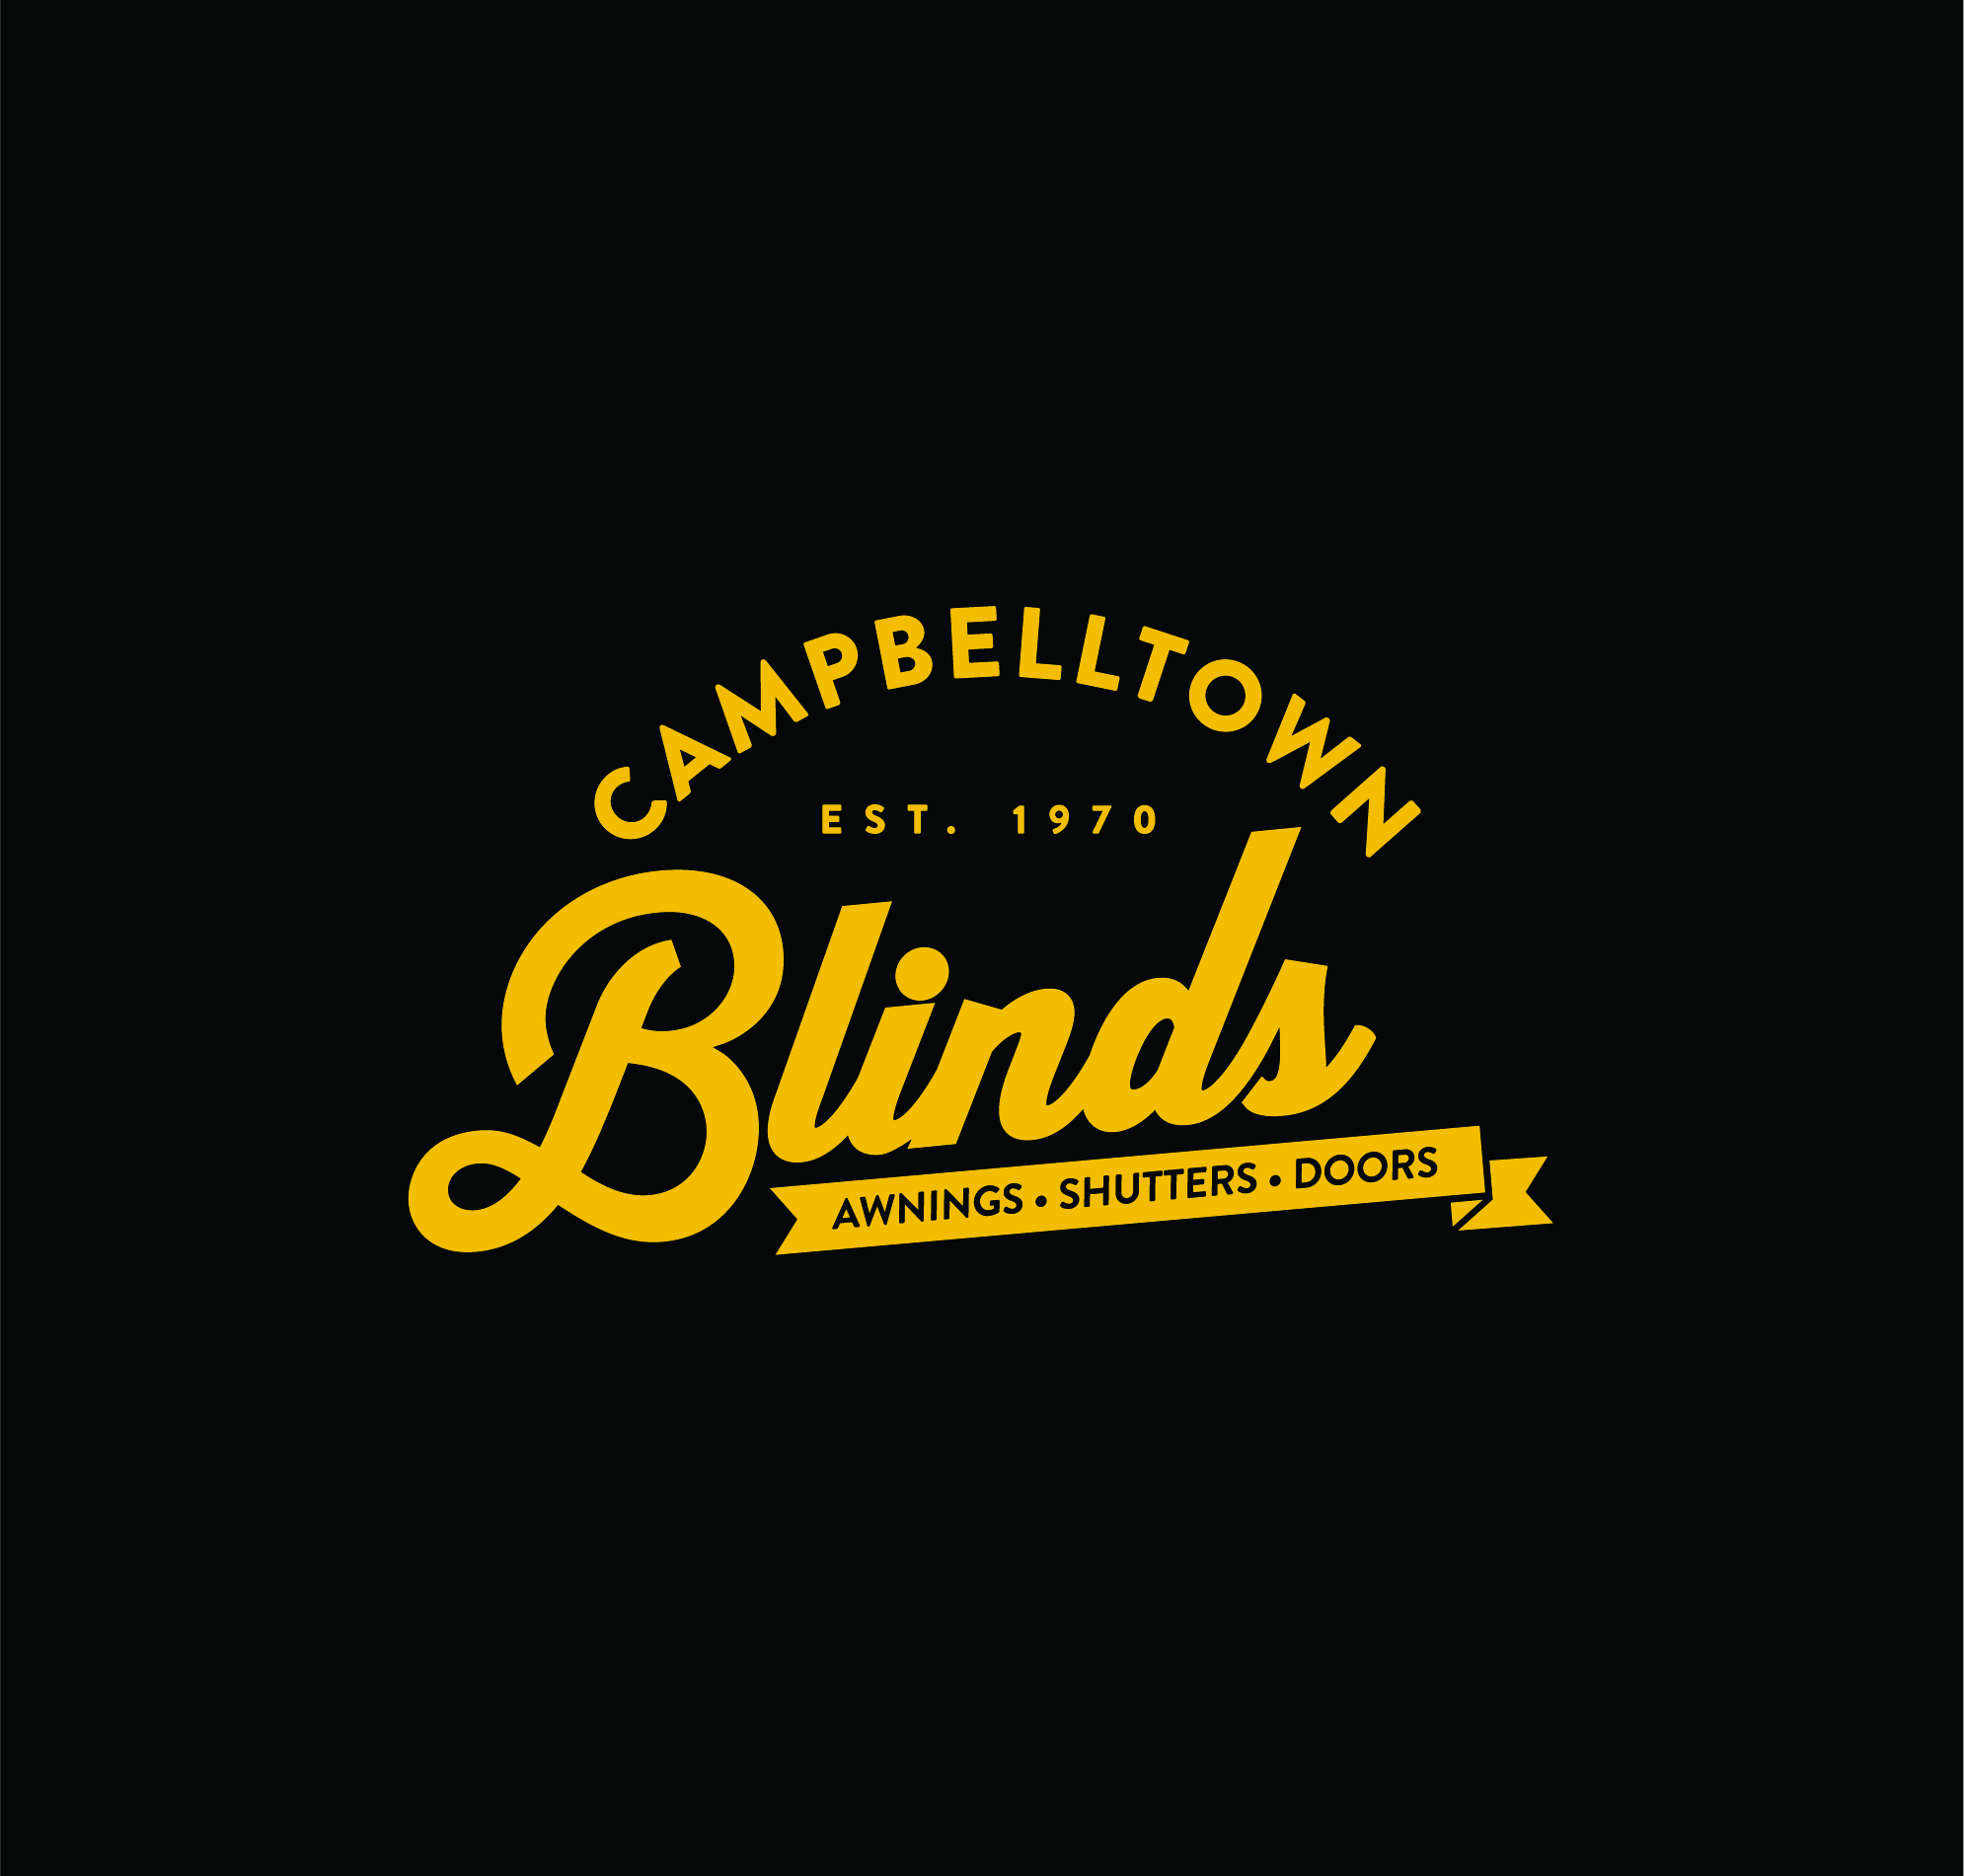 Campbelltown Blinds & Security Doors